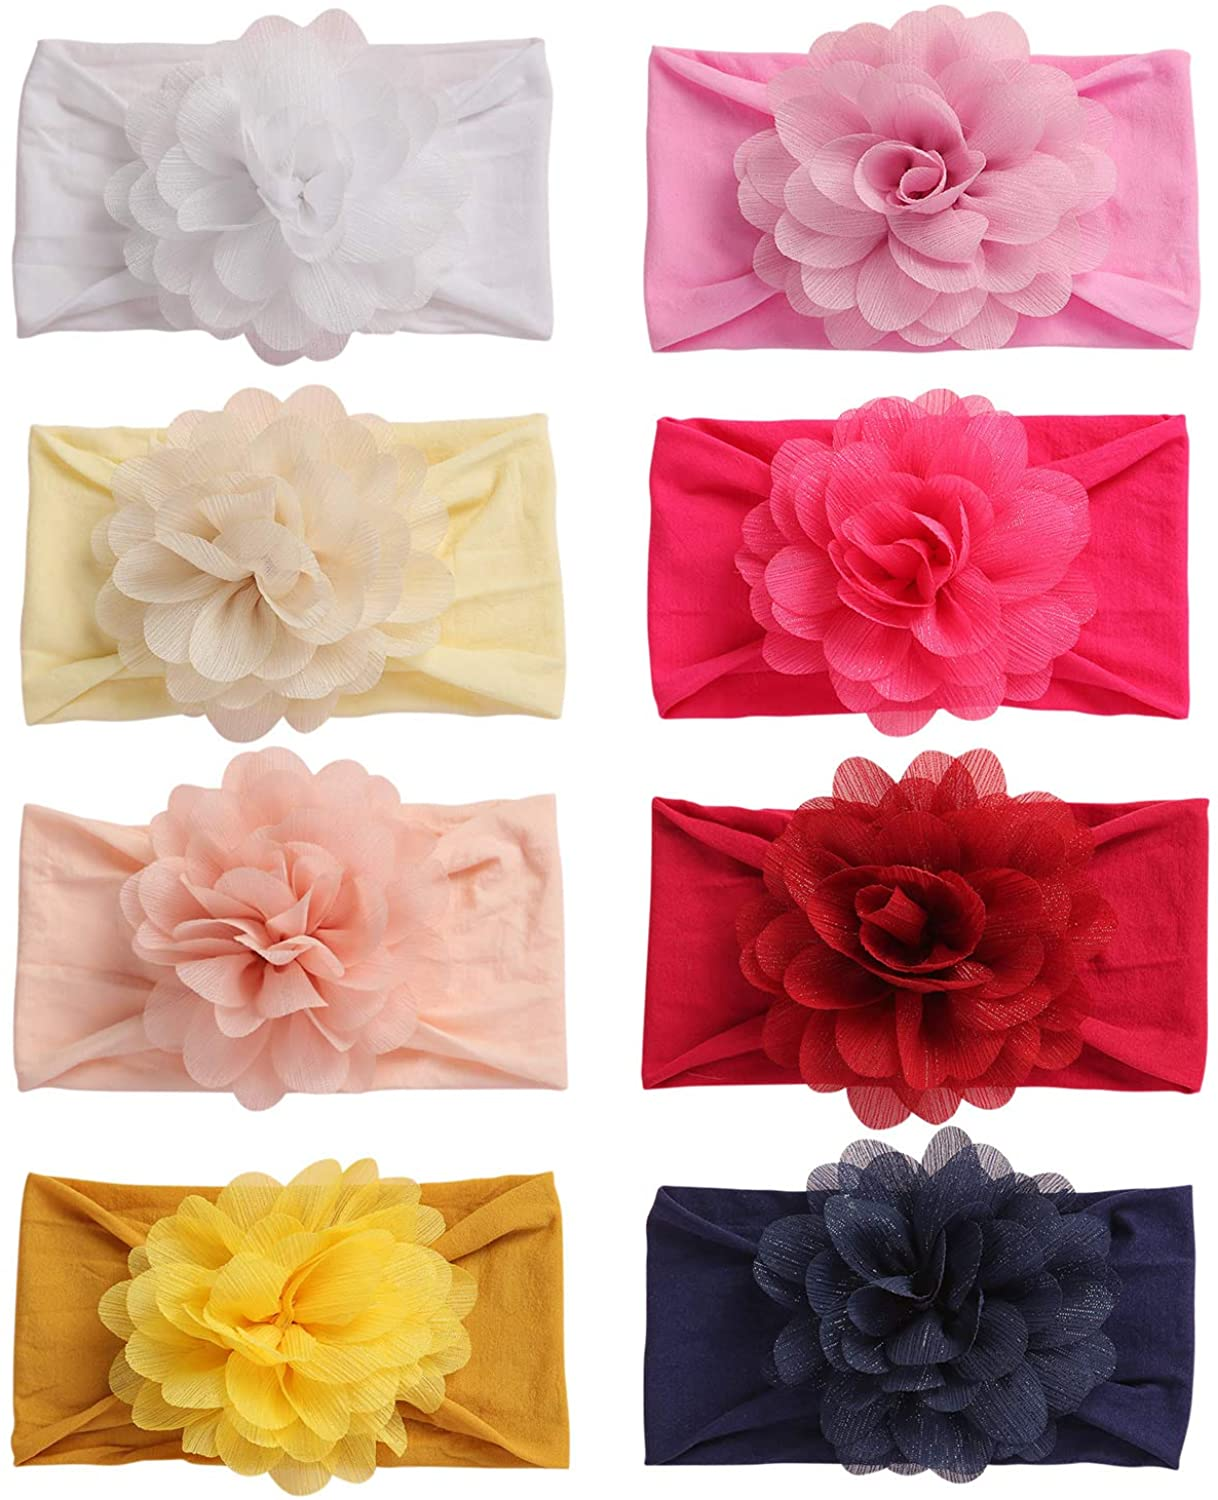 inSowni 8pcs Solid Celtic Knot Stretchy Nylon Turban Headbands Headwraps Hair Bands Accssories for Baby Girls Toddlers Newborns Infants Kids